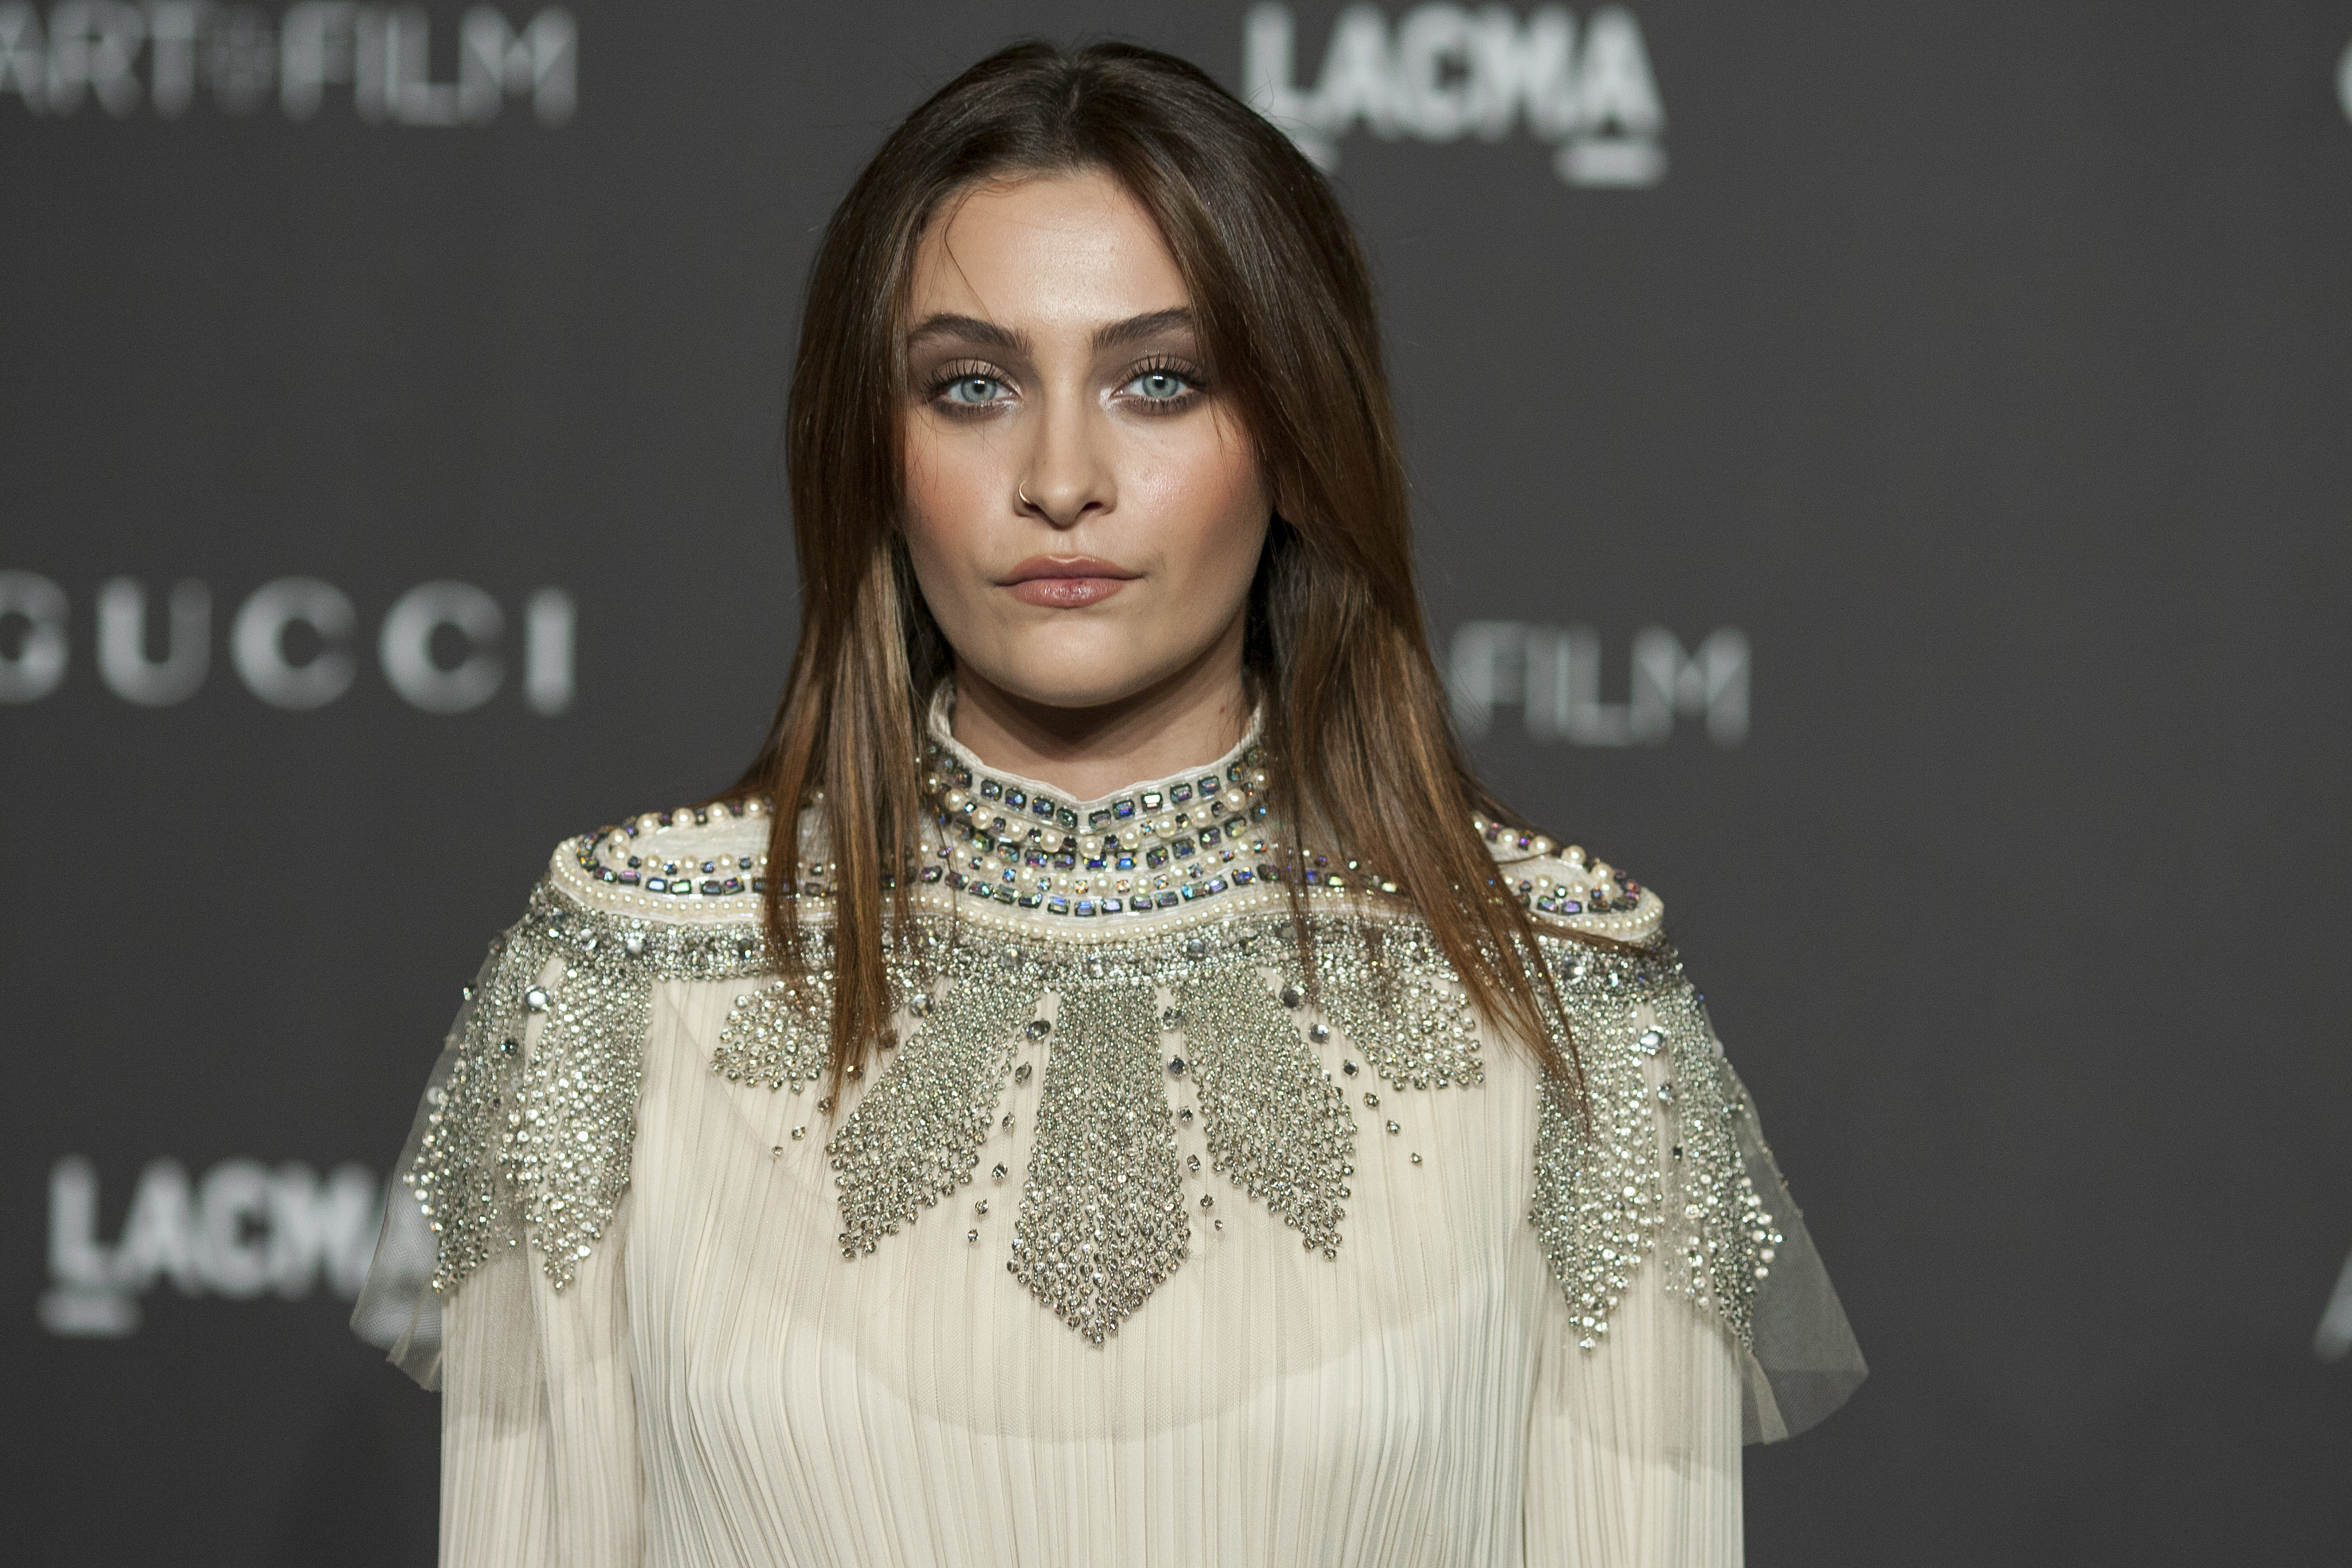 Paris Jackson Steps Out at 'The Dirt' Premiere After Hospitalization